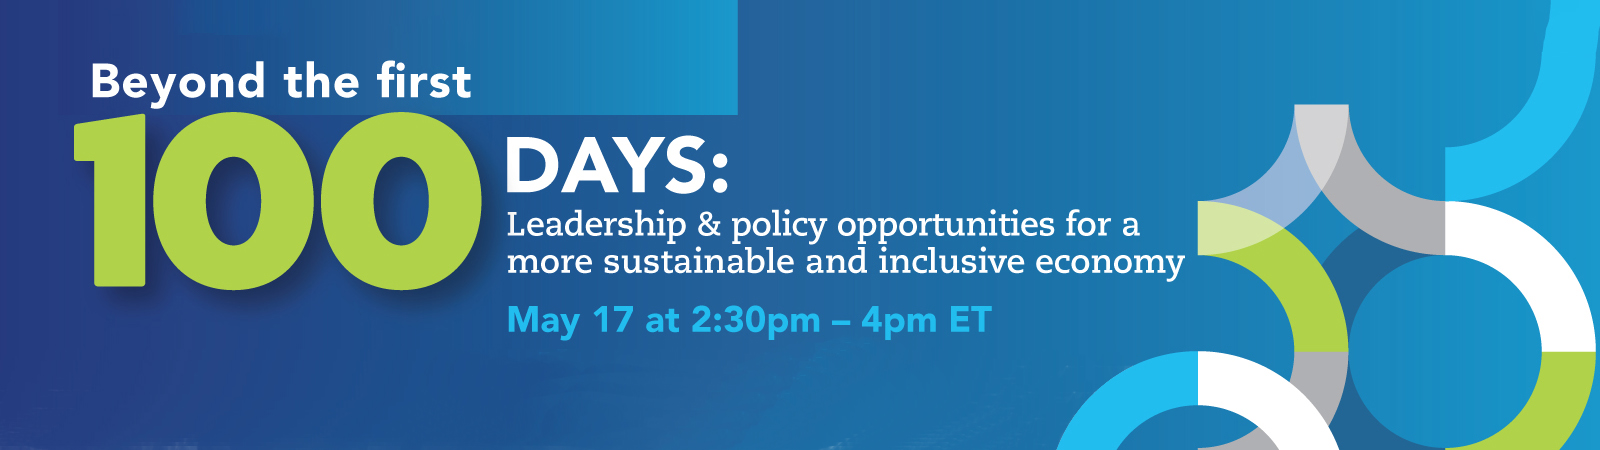 Beyond the first 100 days: Leadership & policy opportunities for a more sustainable and inclusive economy